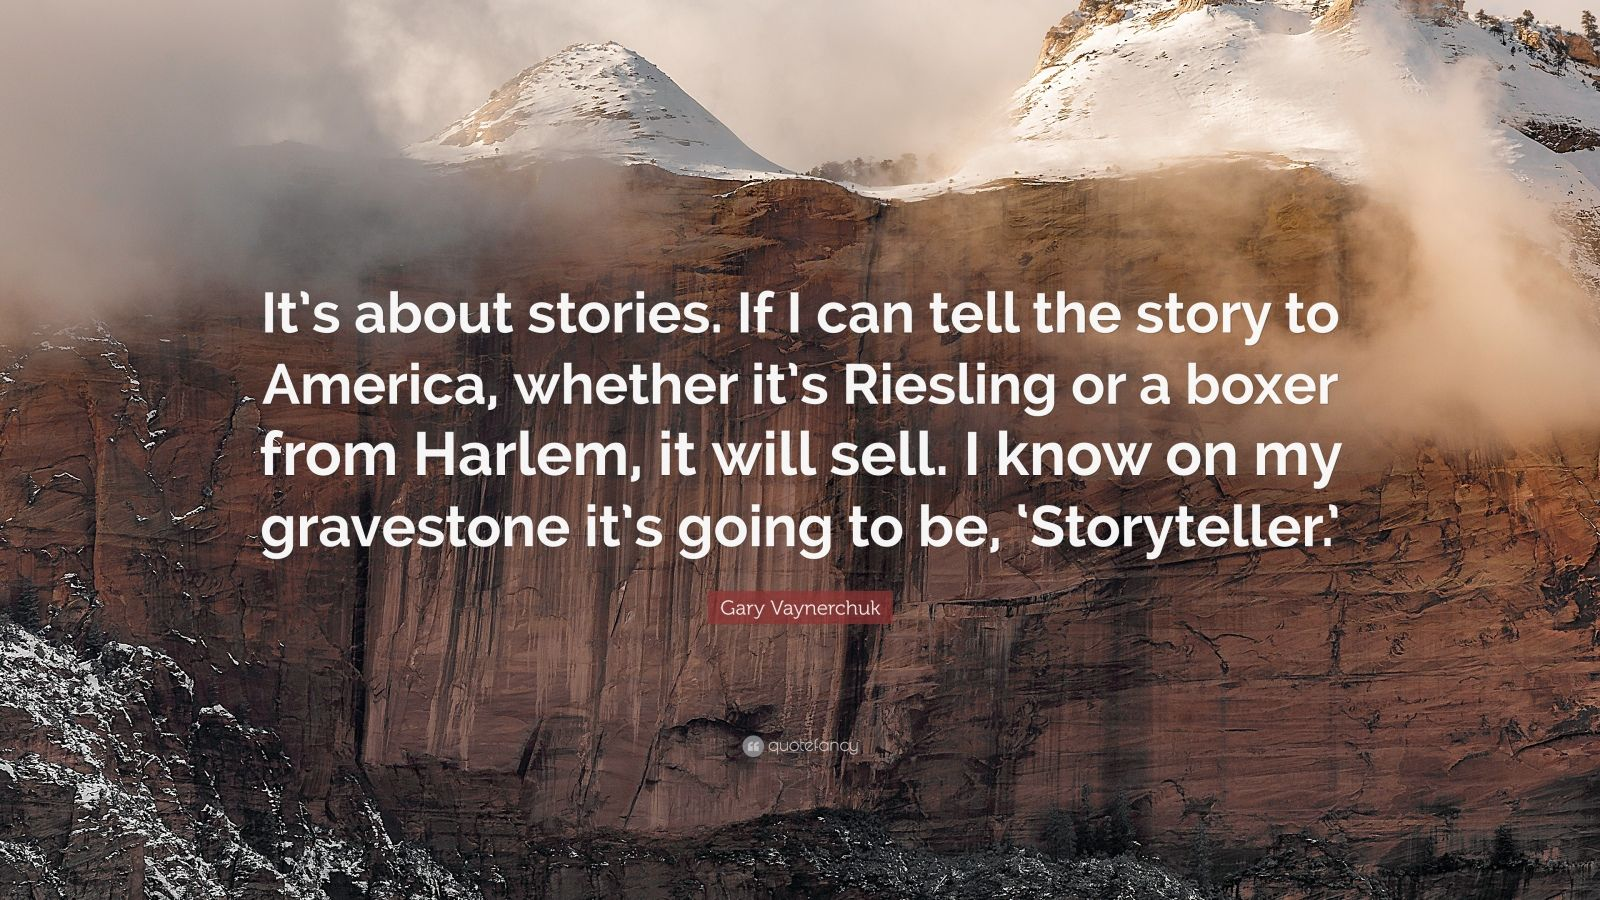 """Gary Vaynerchuk Quote: """"It's about stories. If I can tell the story to America, whether it's Riesling or a boxer from Harlem, it will sell. I know on my gravestone it's going to be, 'Storyteller.'"""""""